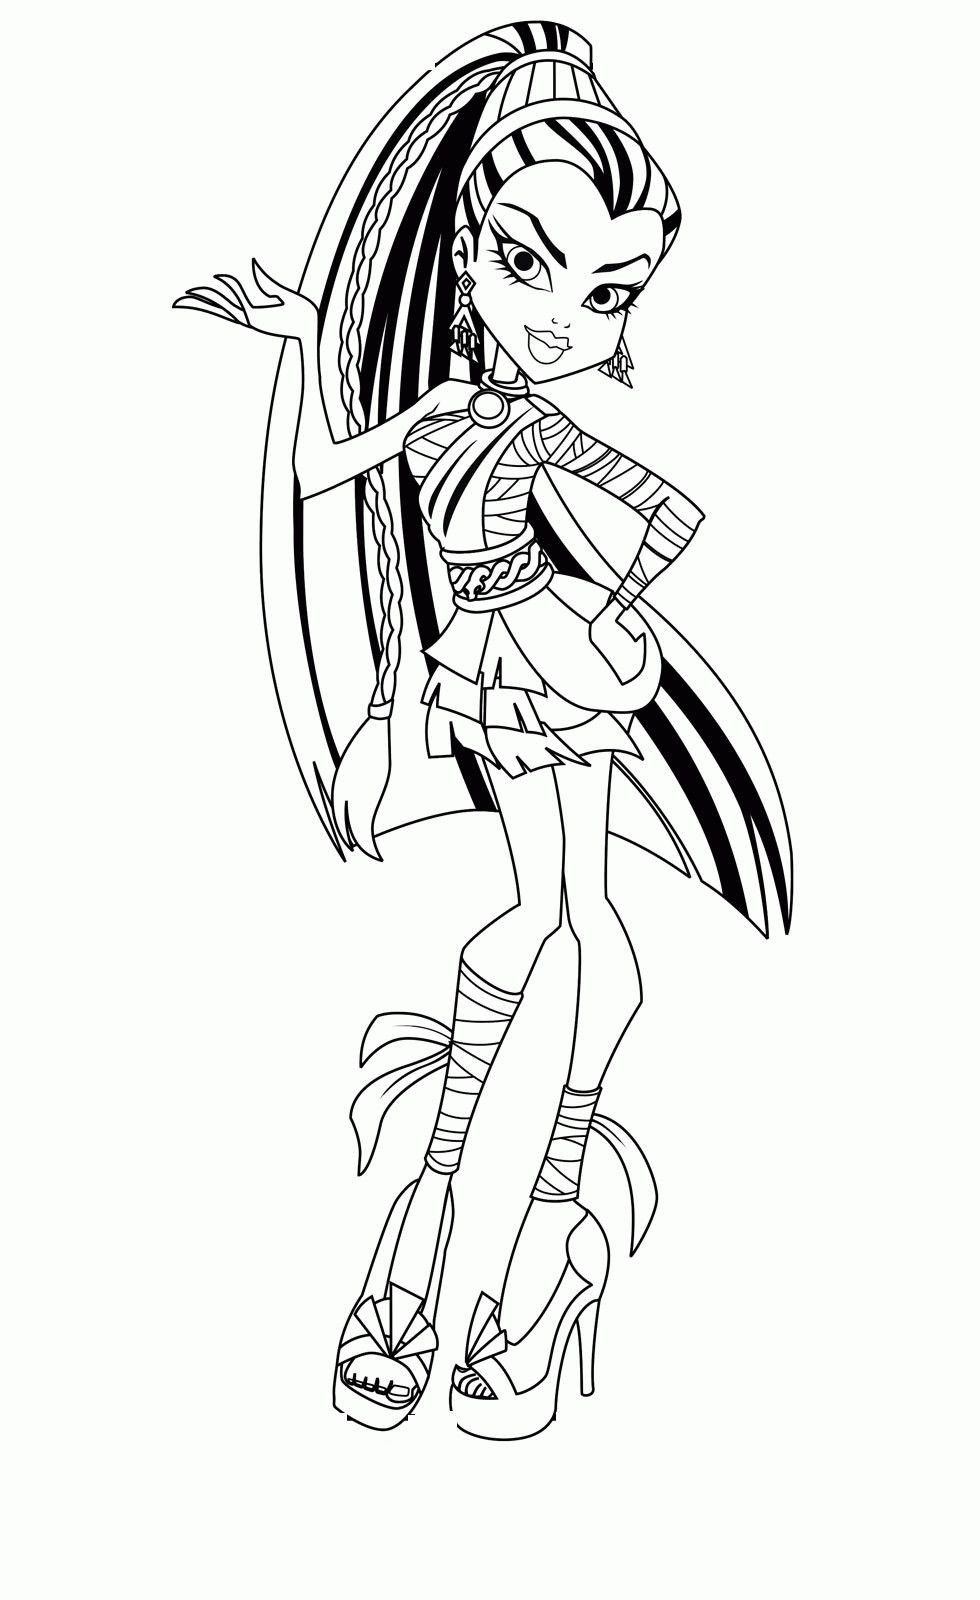 Monster High Coloring Pages Pdf Monster High Coloring Pages Luxury Monster High Col In 2020 Monster Coloring Pages Coloring Pages For Teenagers Coloring Pages For Kids